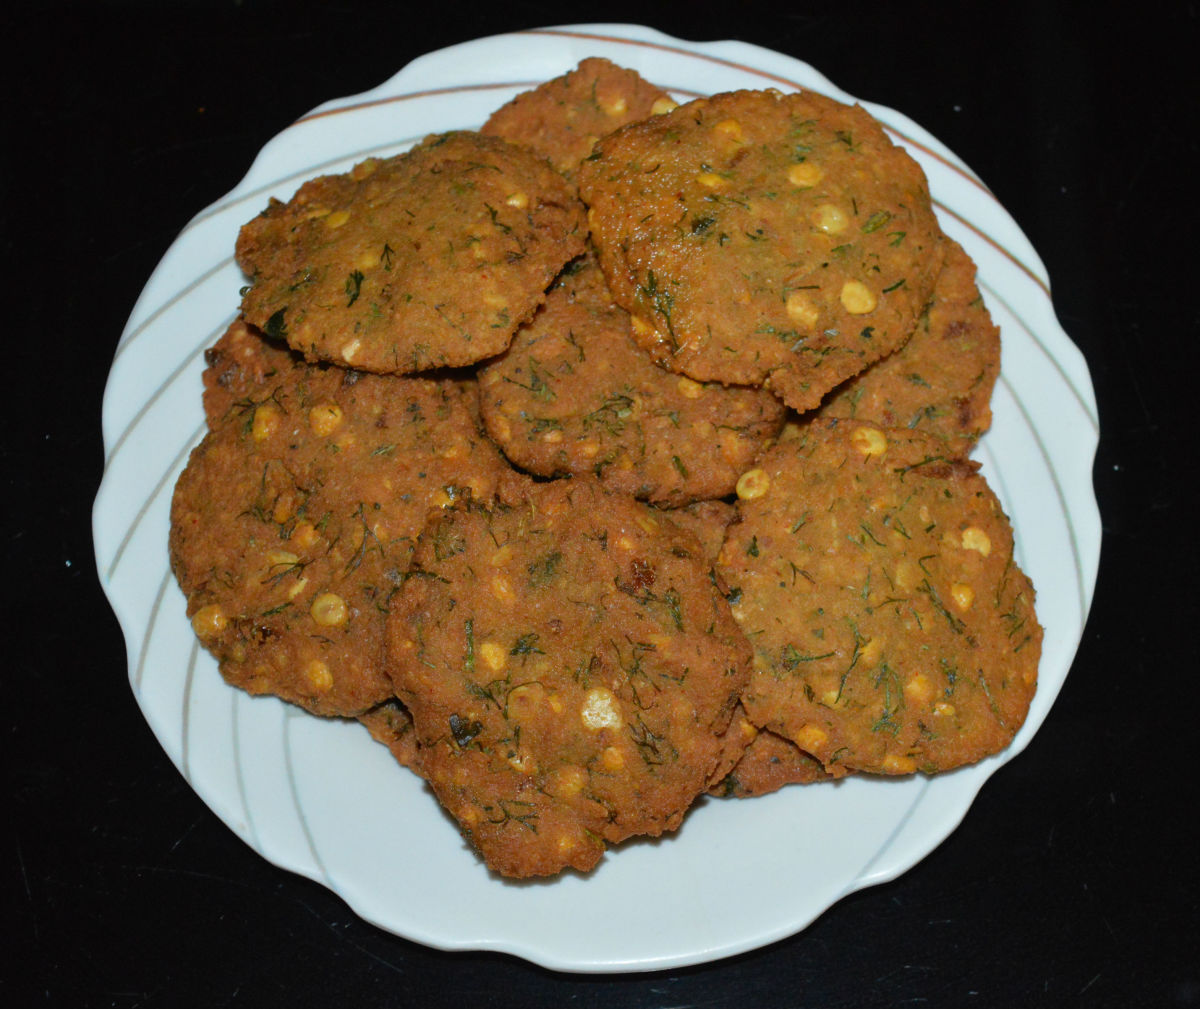 Masala vada are extremely delicious and flavorful. They retain their taste even when they become cold. They have all the goodness of chickpeas, herbs, and spices.